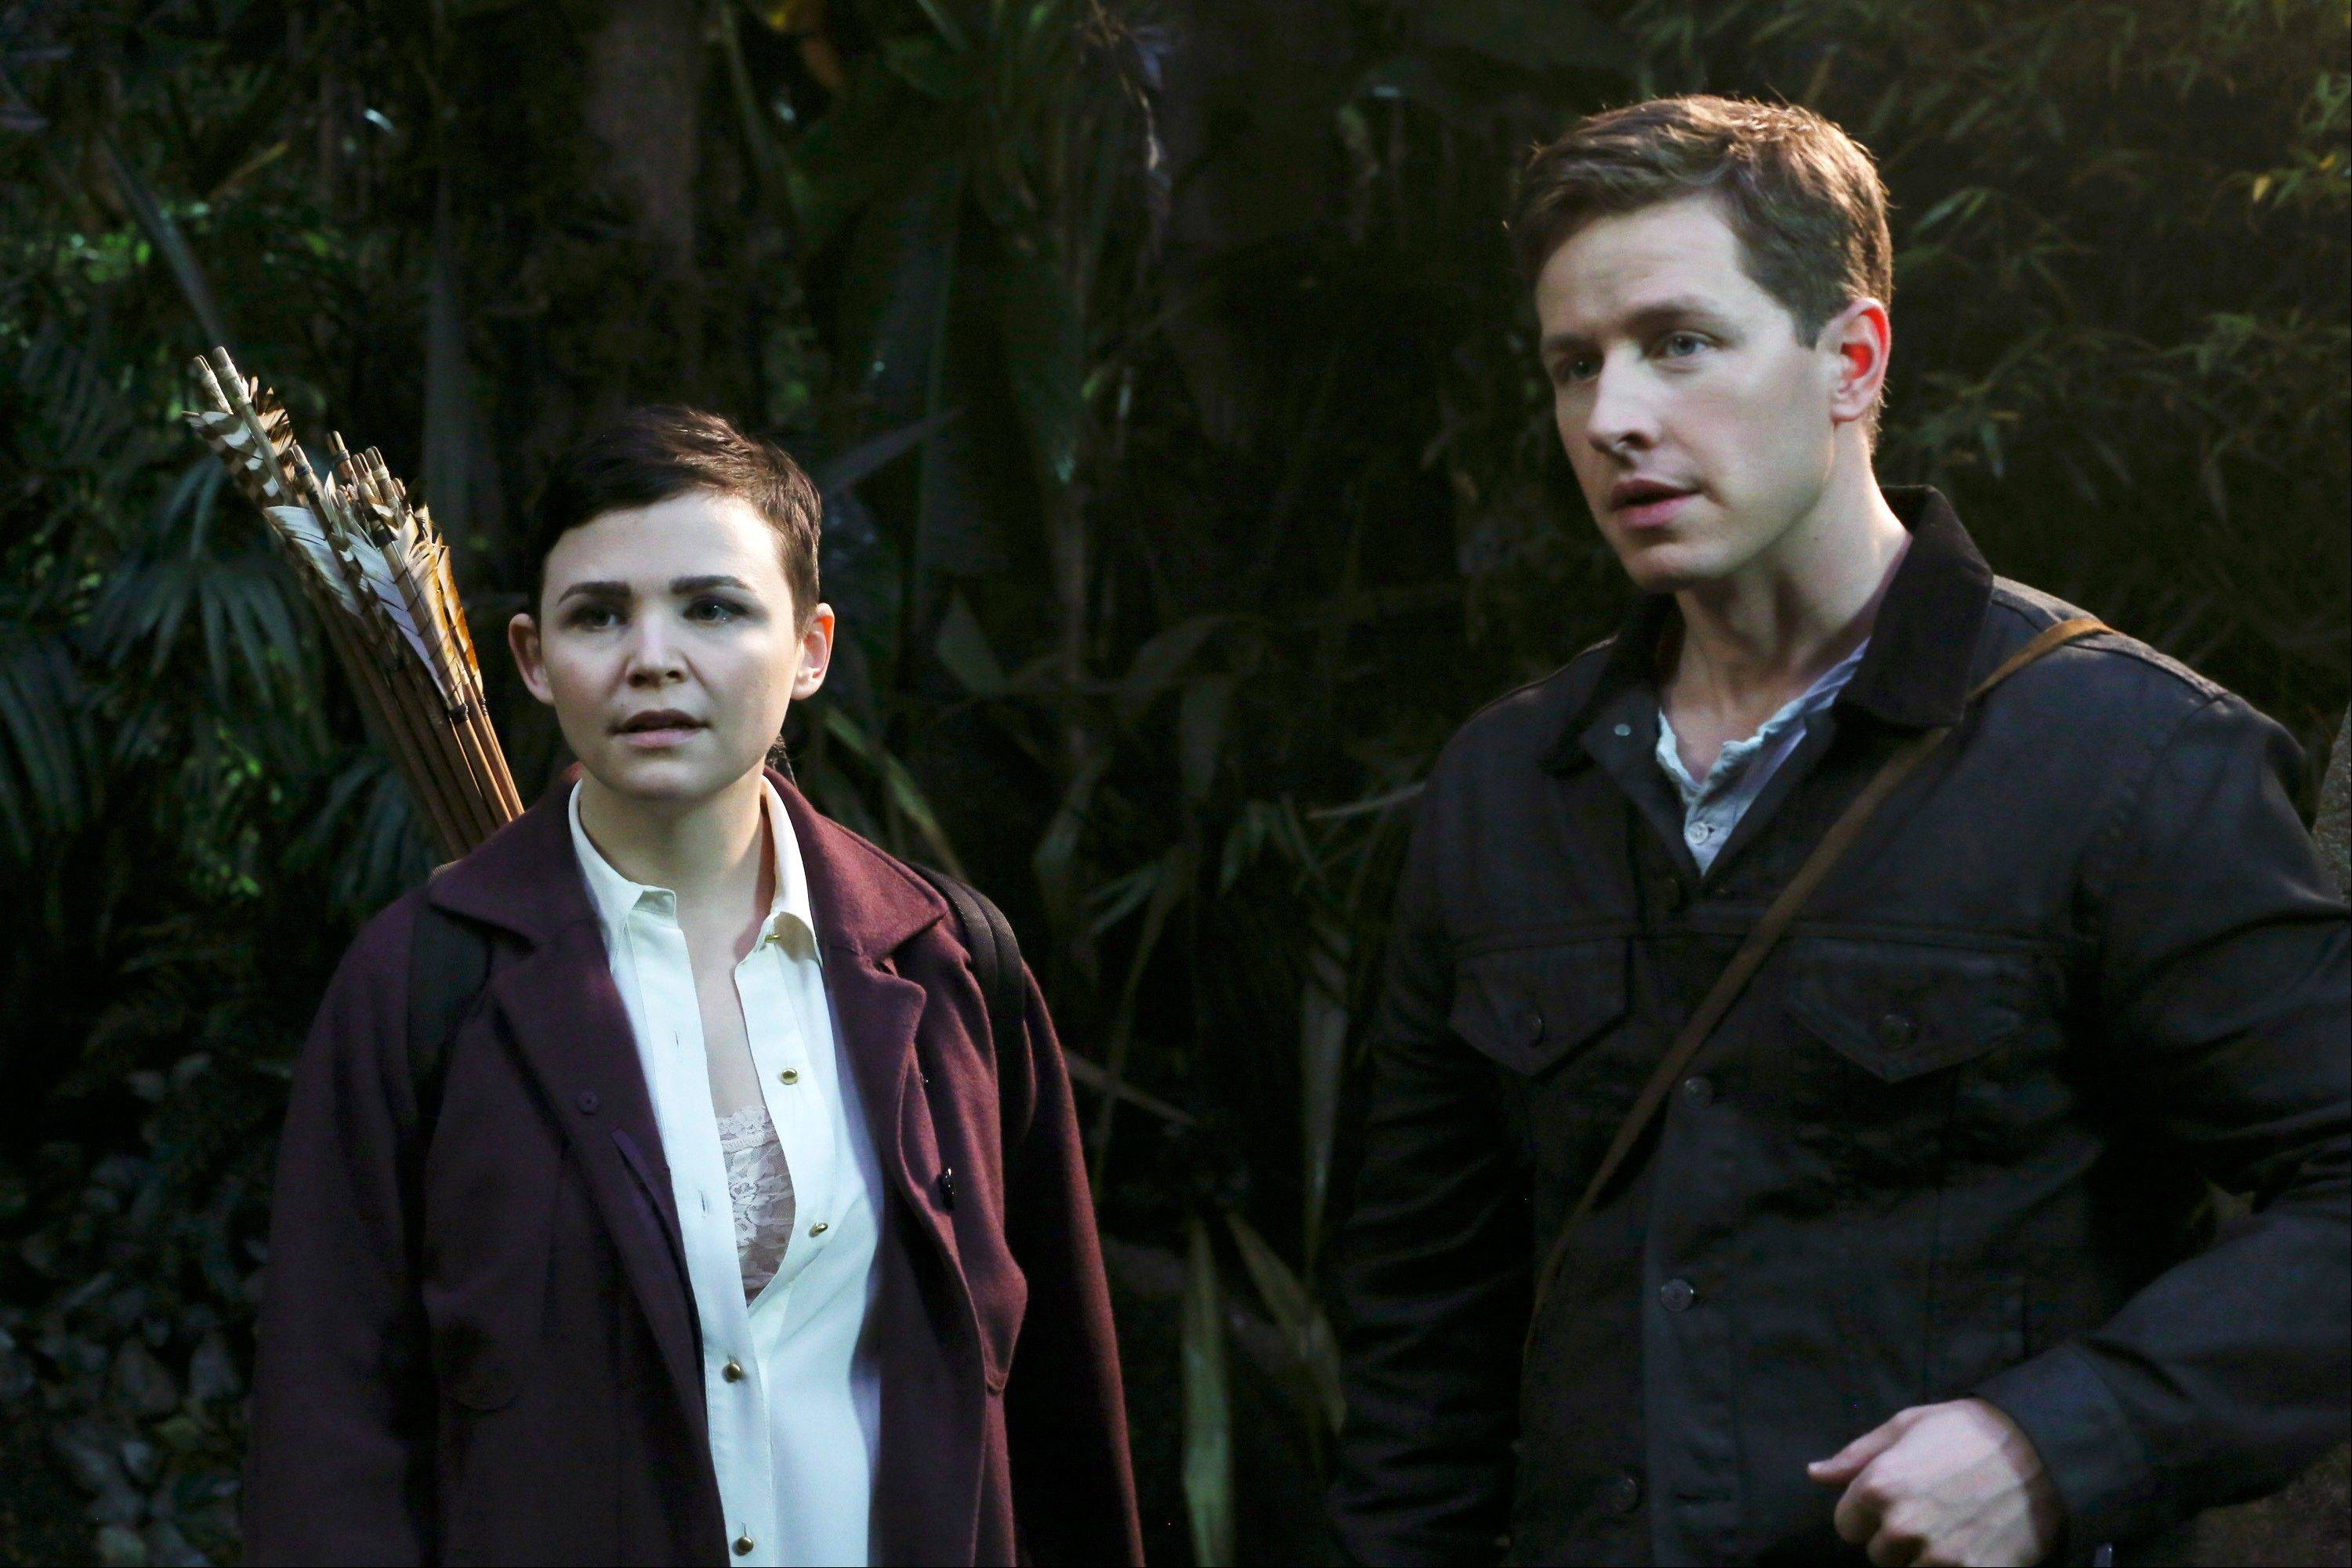 Ginnifer Goodwin, left, and Josh Dallas in a scene from �Once Upon a Time.� The actors, who play Snow White and Prince Charming on the show, are expecting their first child together.